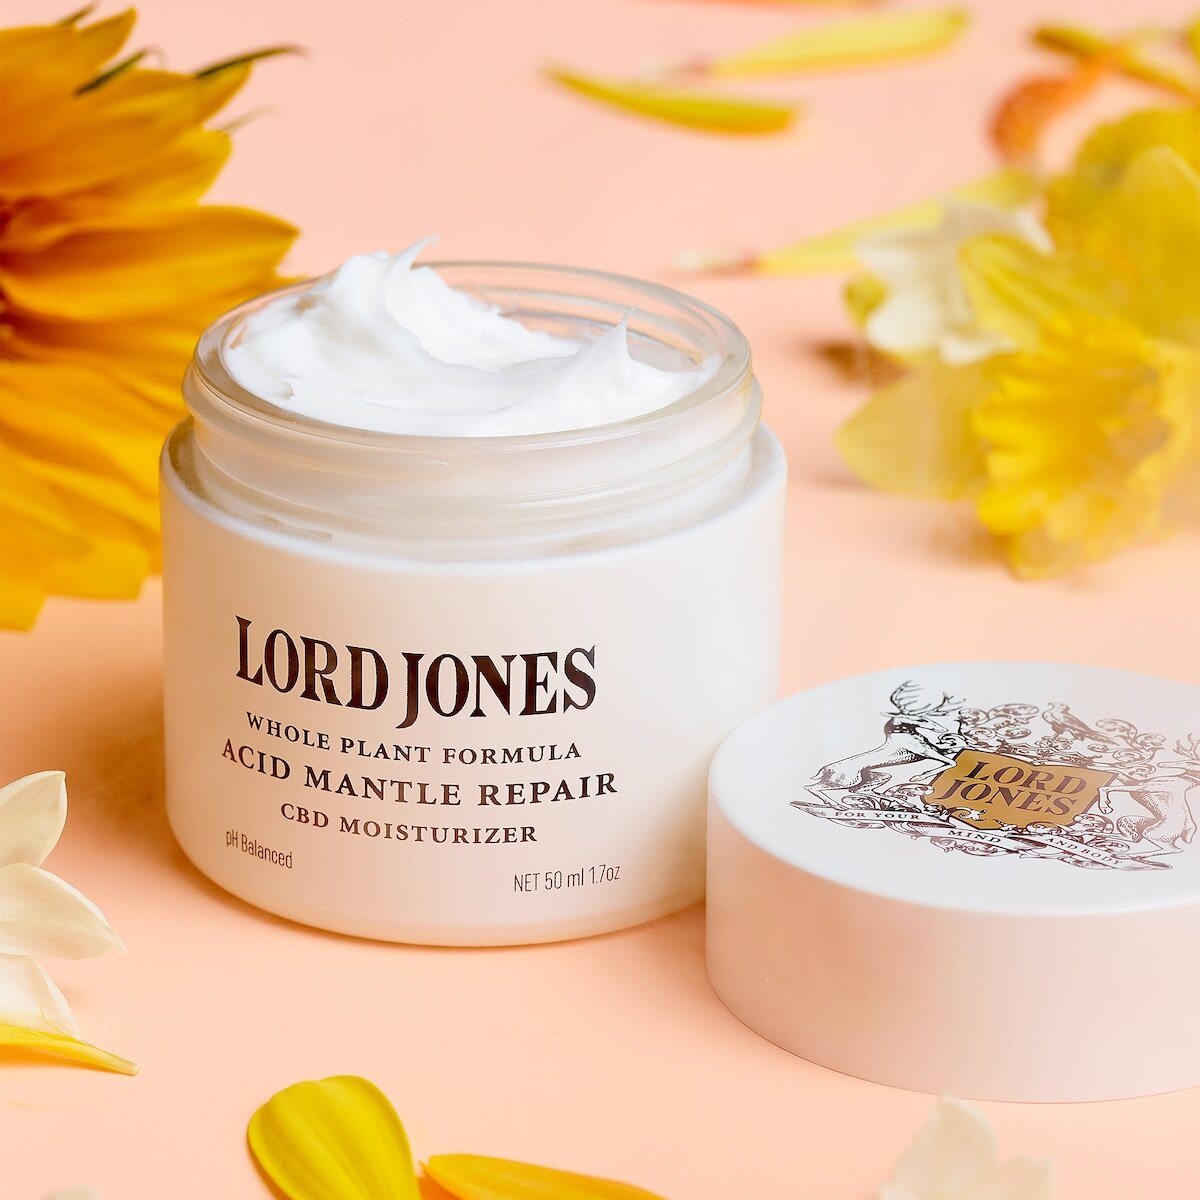 Lord Jones Acid Mantle Repair Moisturizer  - A soothing moisturizer packed with 250mg of CBD, ceramides and hyaluronic acid designed to replenish the skin's moisture barrier.